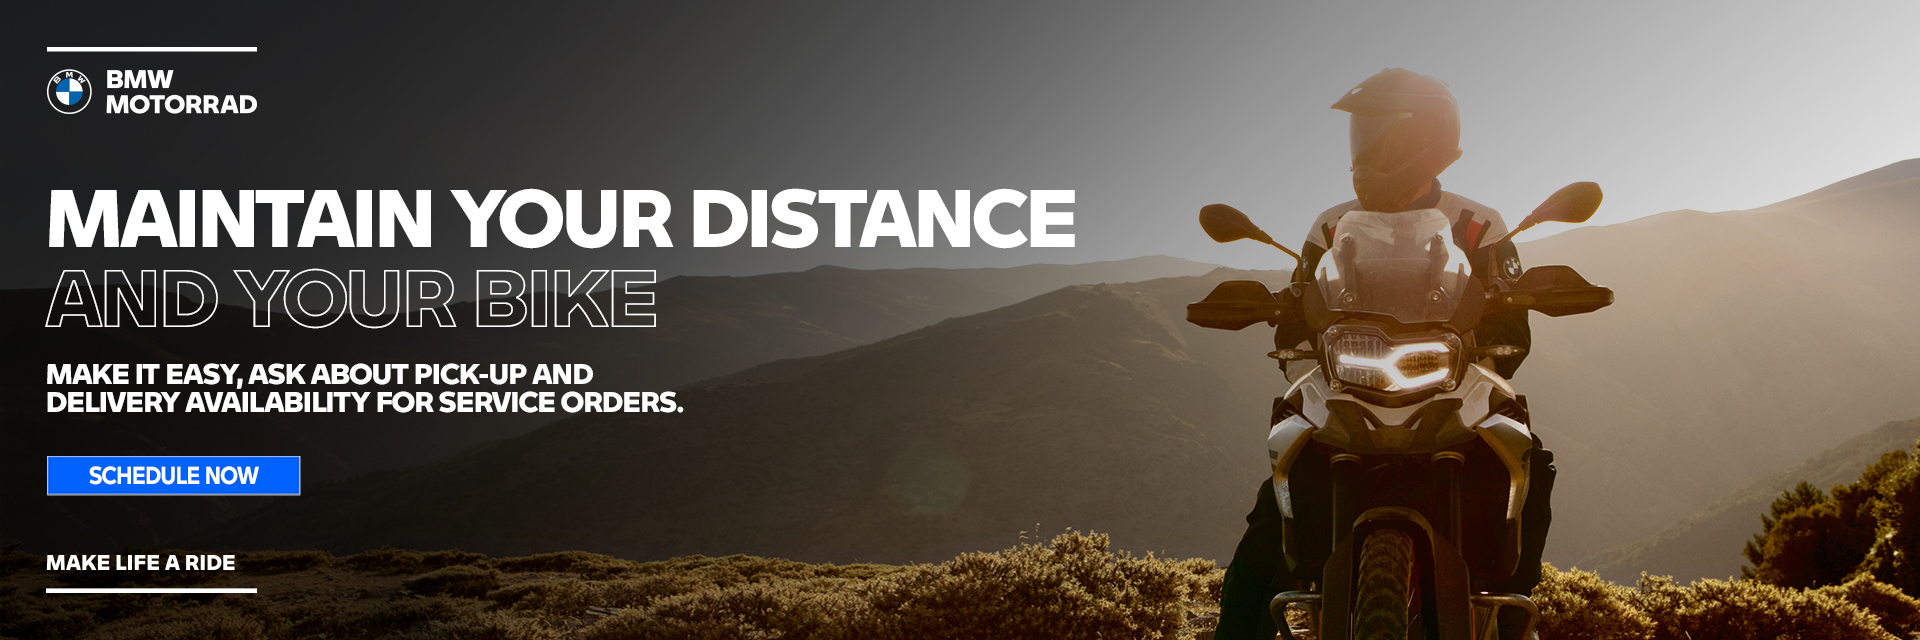 Maintain Your Distance And Your Bike